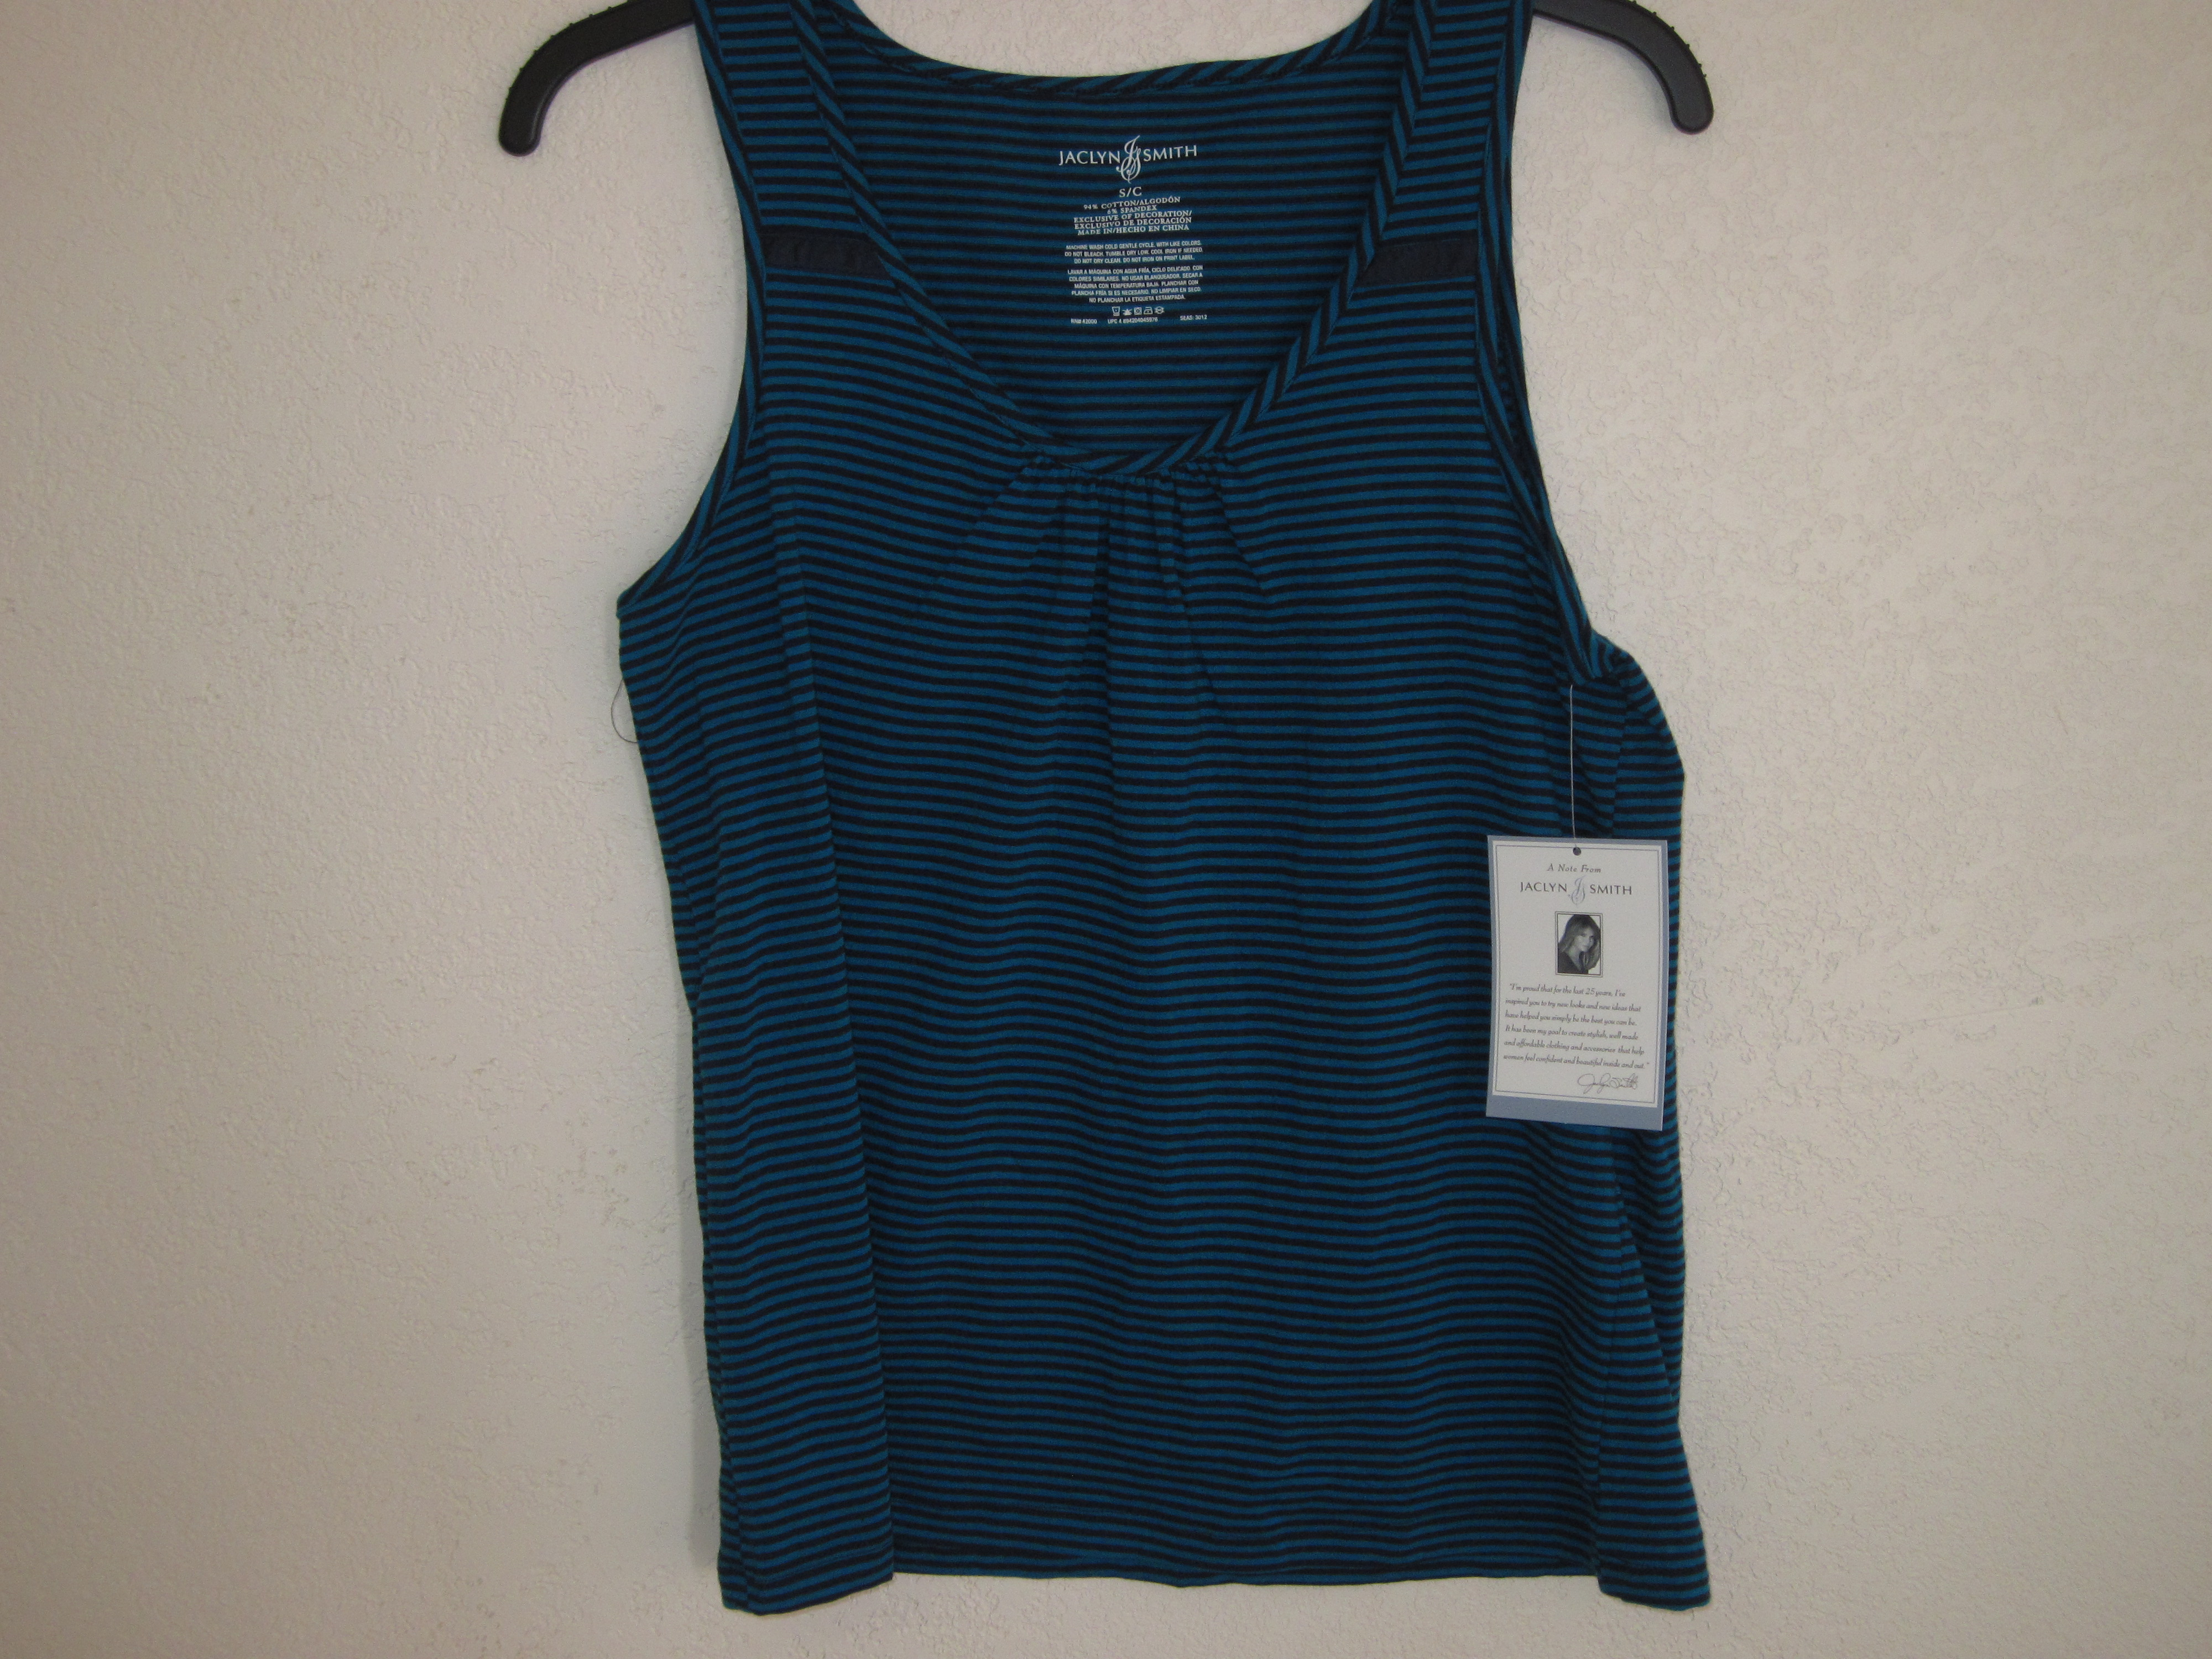 Jaclyn Smith Sz Small Loungewear Tank Top (blue&black stripe)